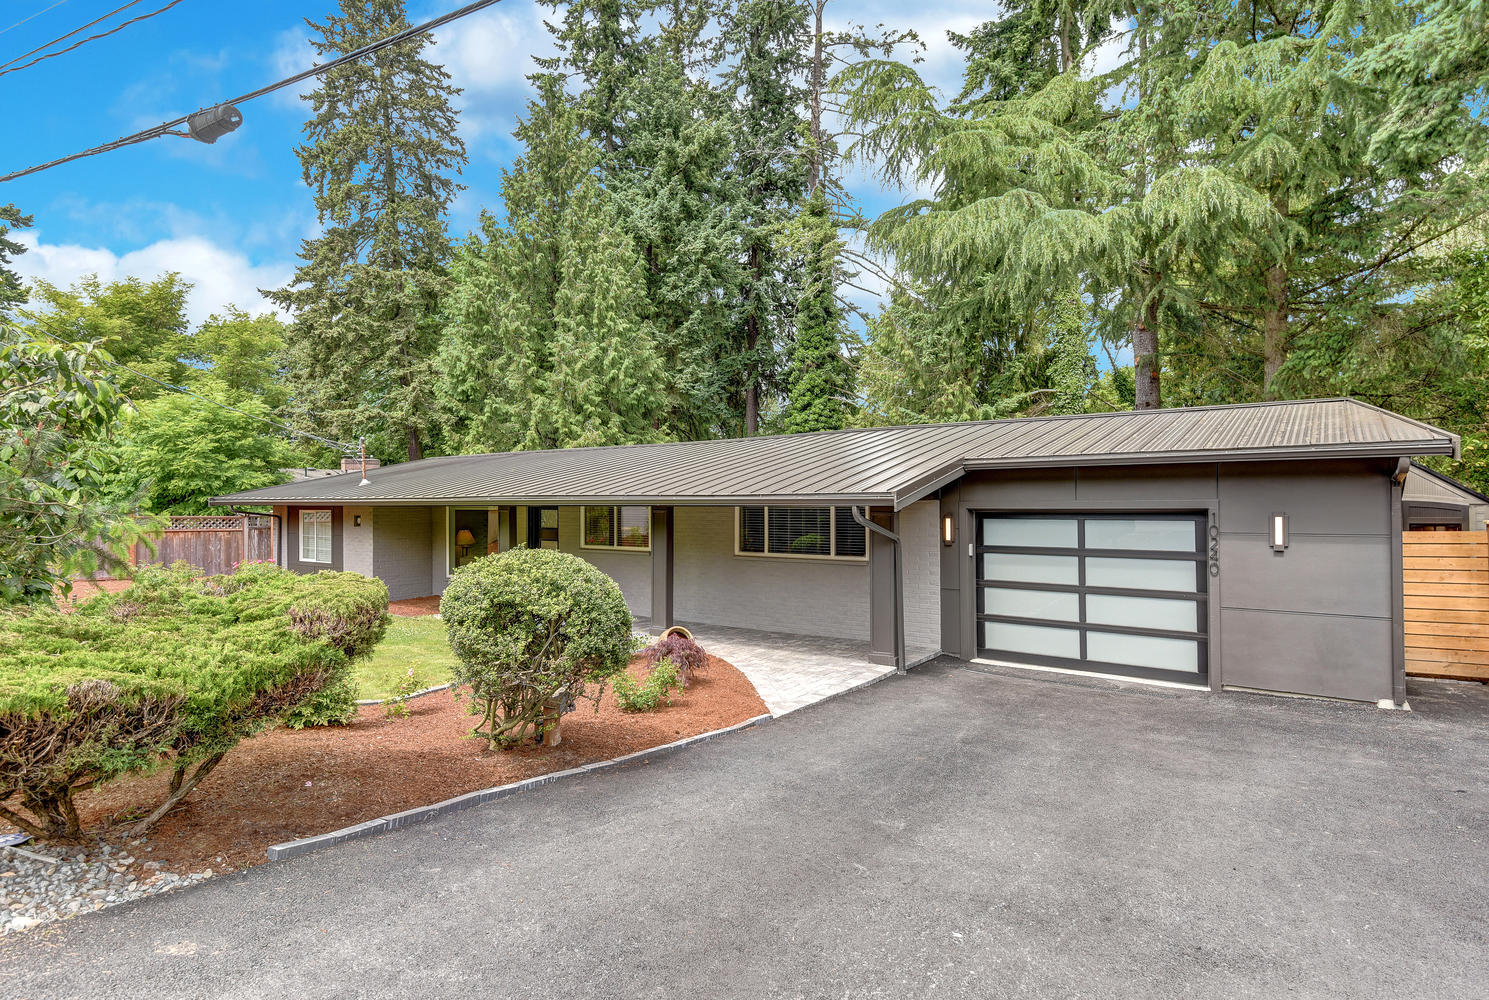 Single Family Home for Sale at Intriguing West Bellevue Home 10240 NE 30th Pl Bellevue, Washington 98004 United States